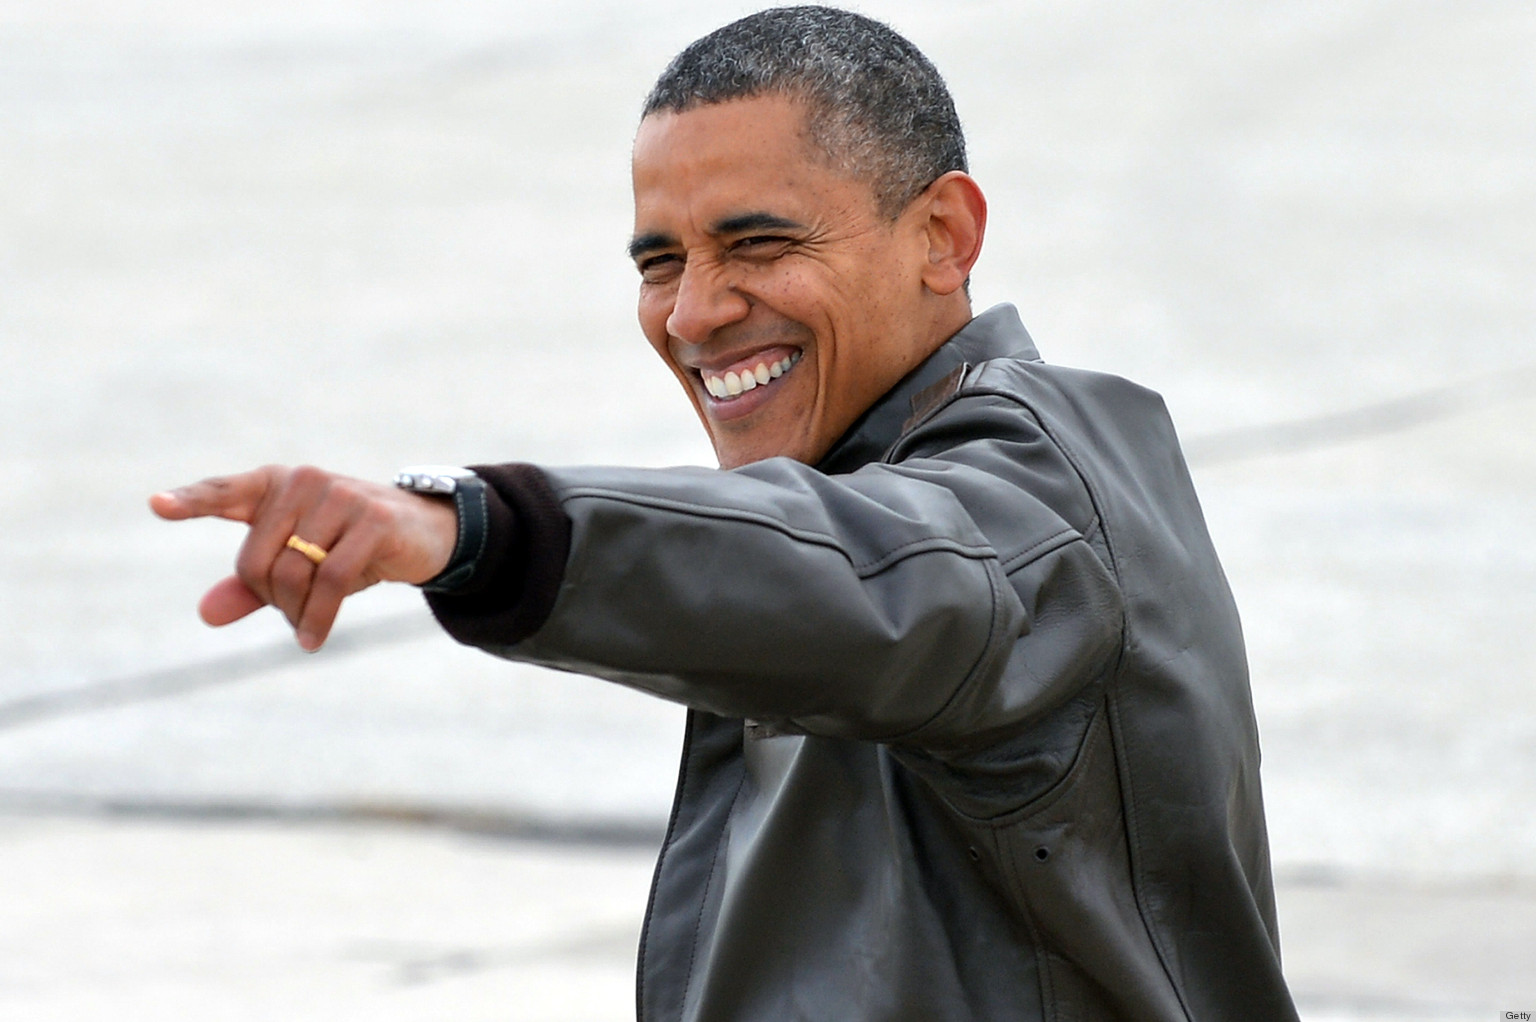 new style 00ed0 0401a Obama s Leather Bomber Jacket Is One Pair Of Aviators Away From  Top Gun   (PHOTOS)   HuffPost